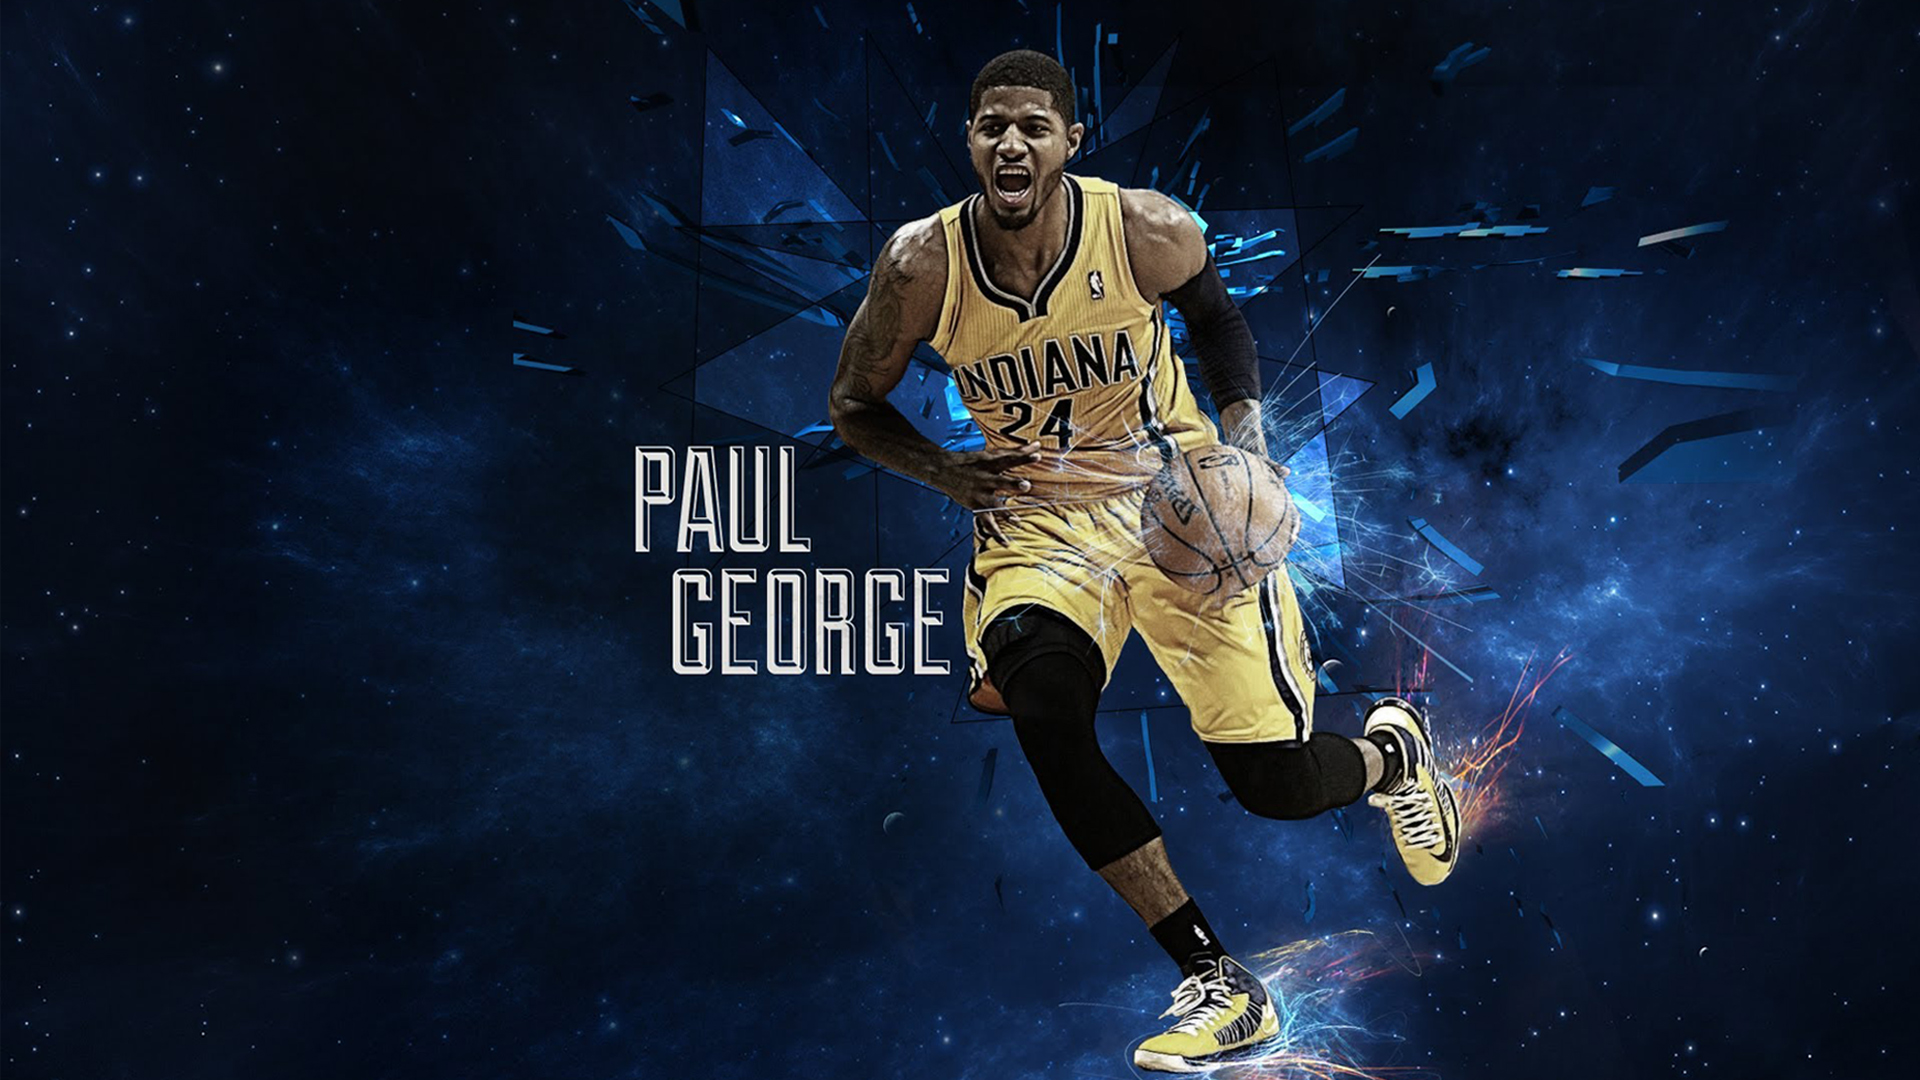 NBA Player Wallpapers